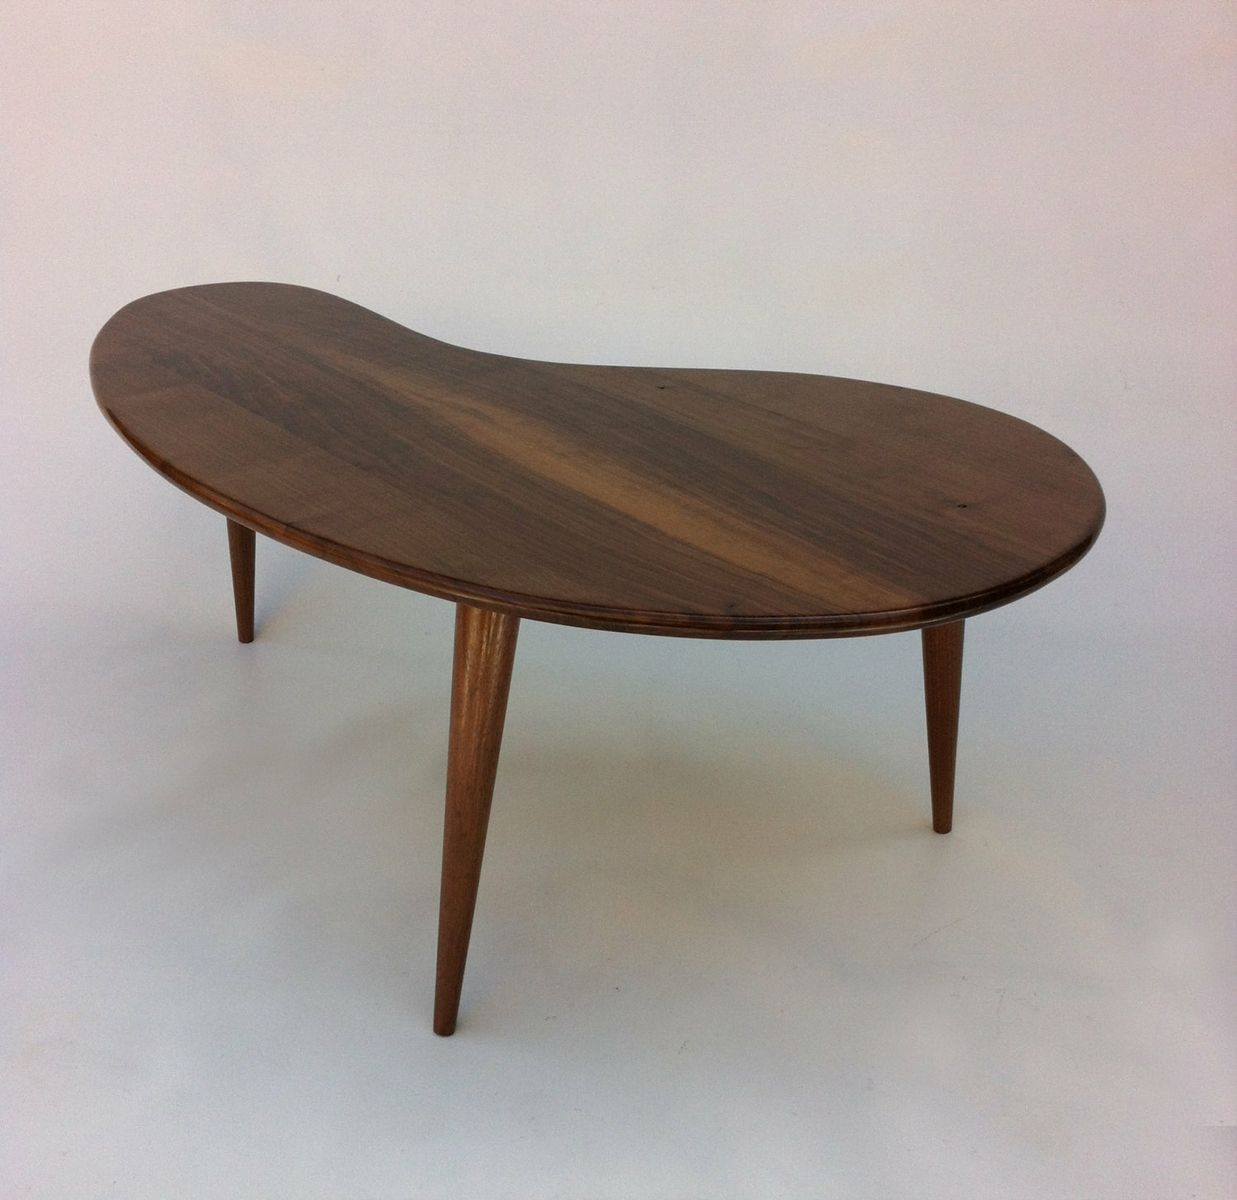 buy custom modern coffee cocktail table eames era amoeba With design coffee table legs with modern style